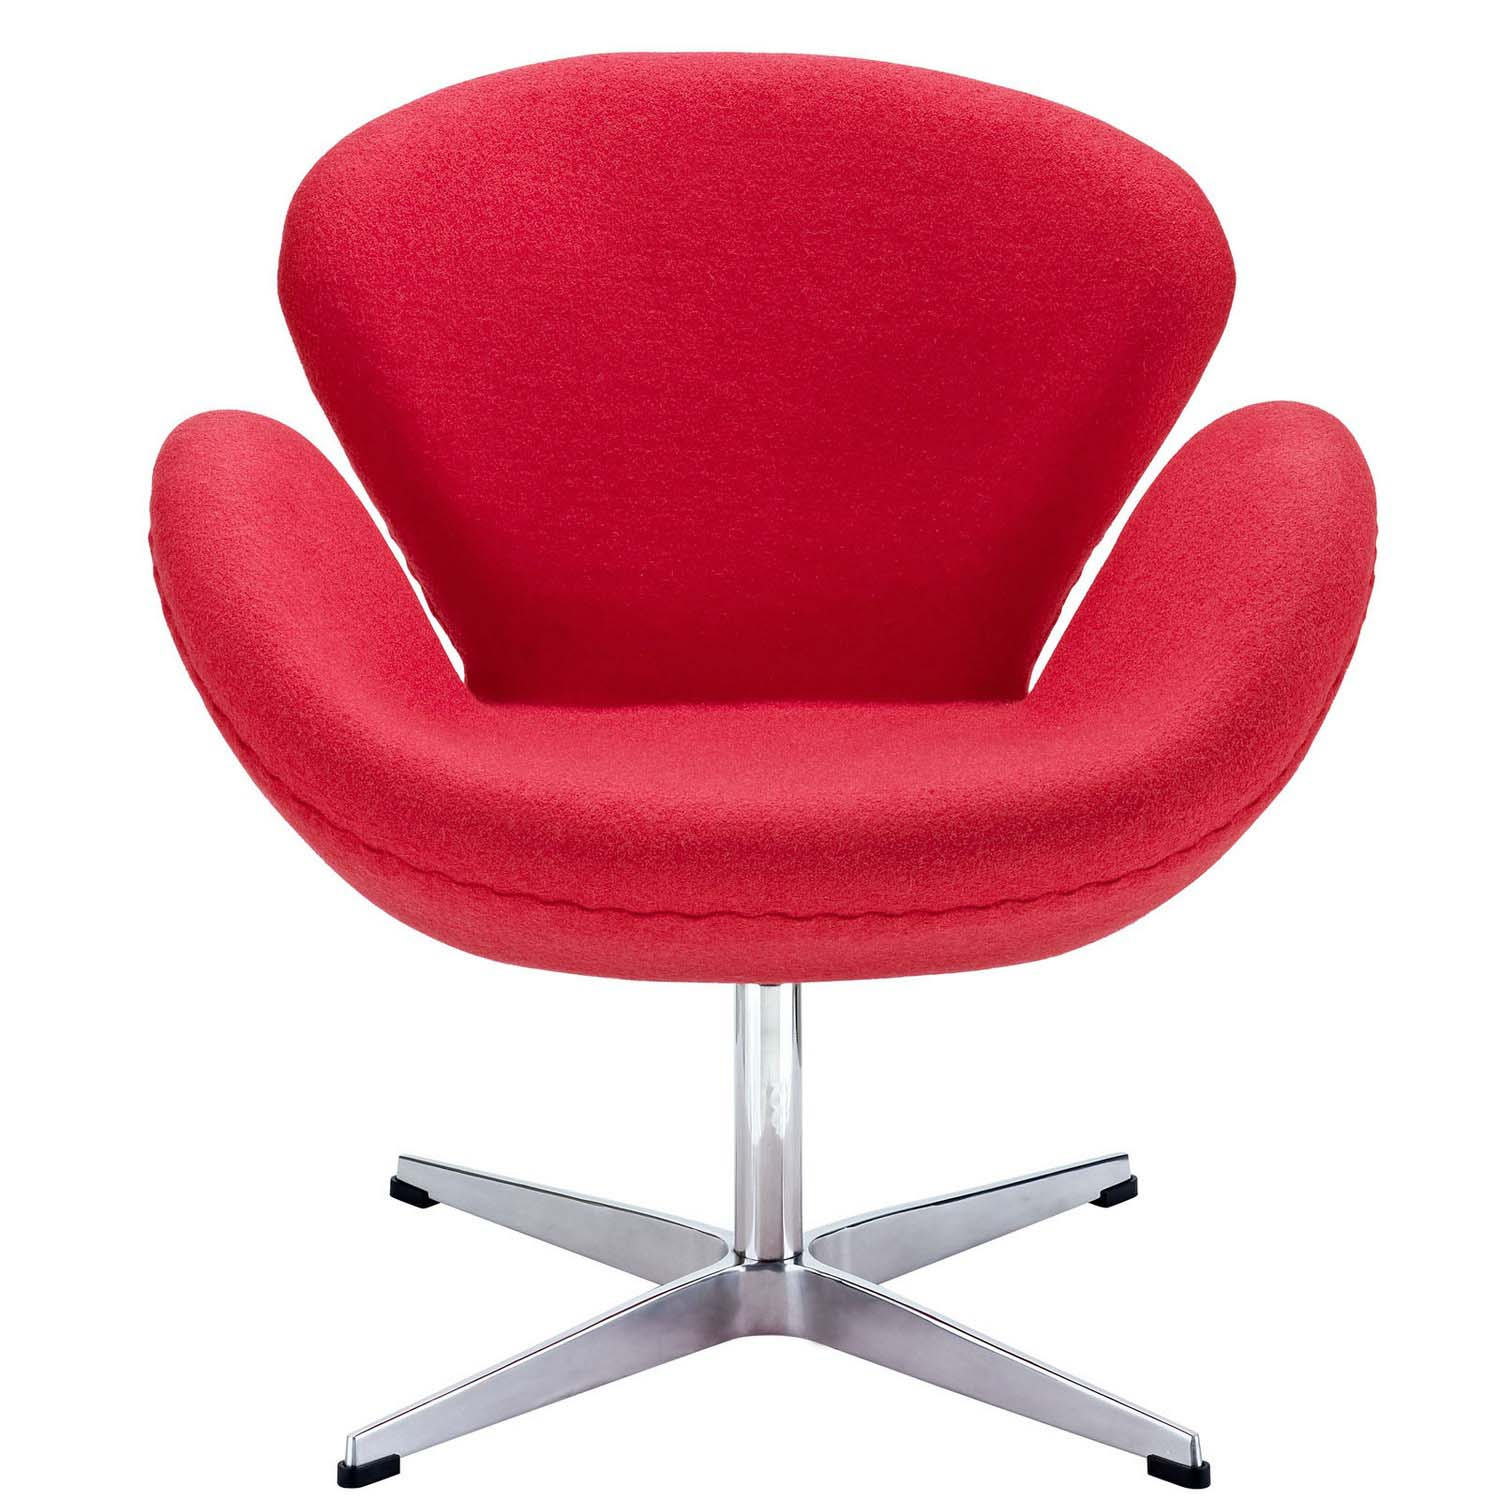 Modway Wing Lounge Chair - Red